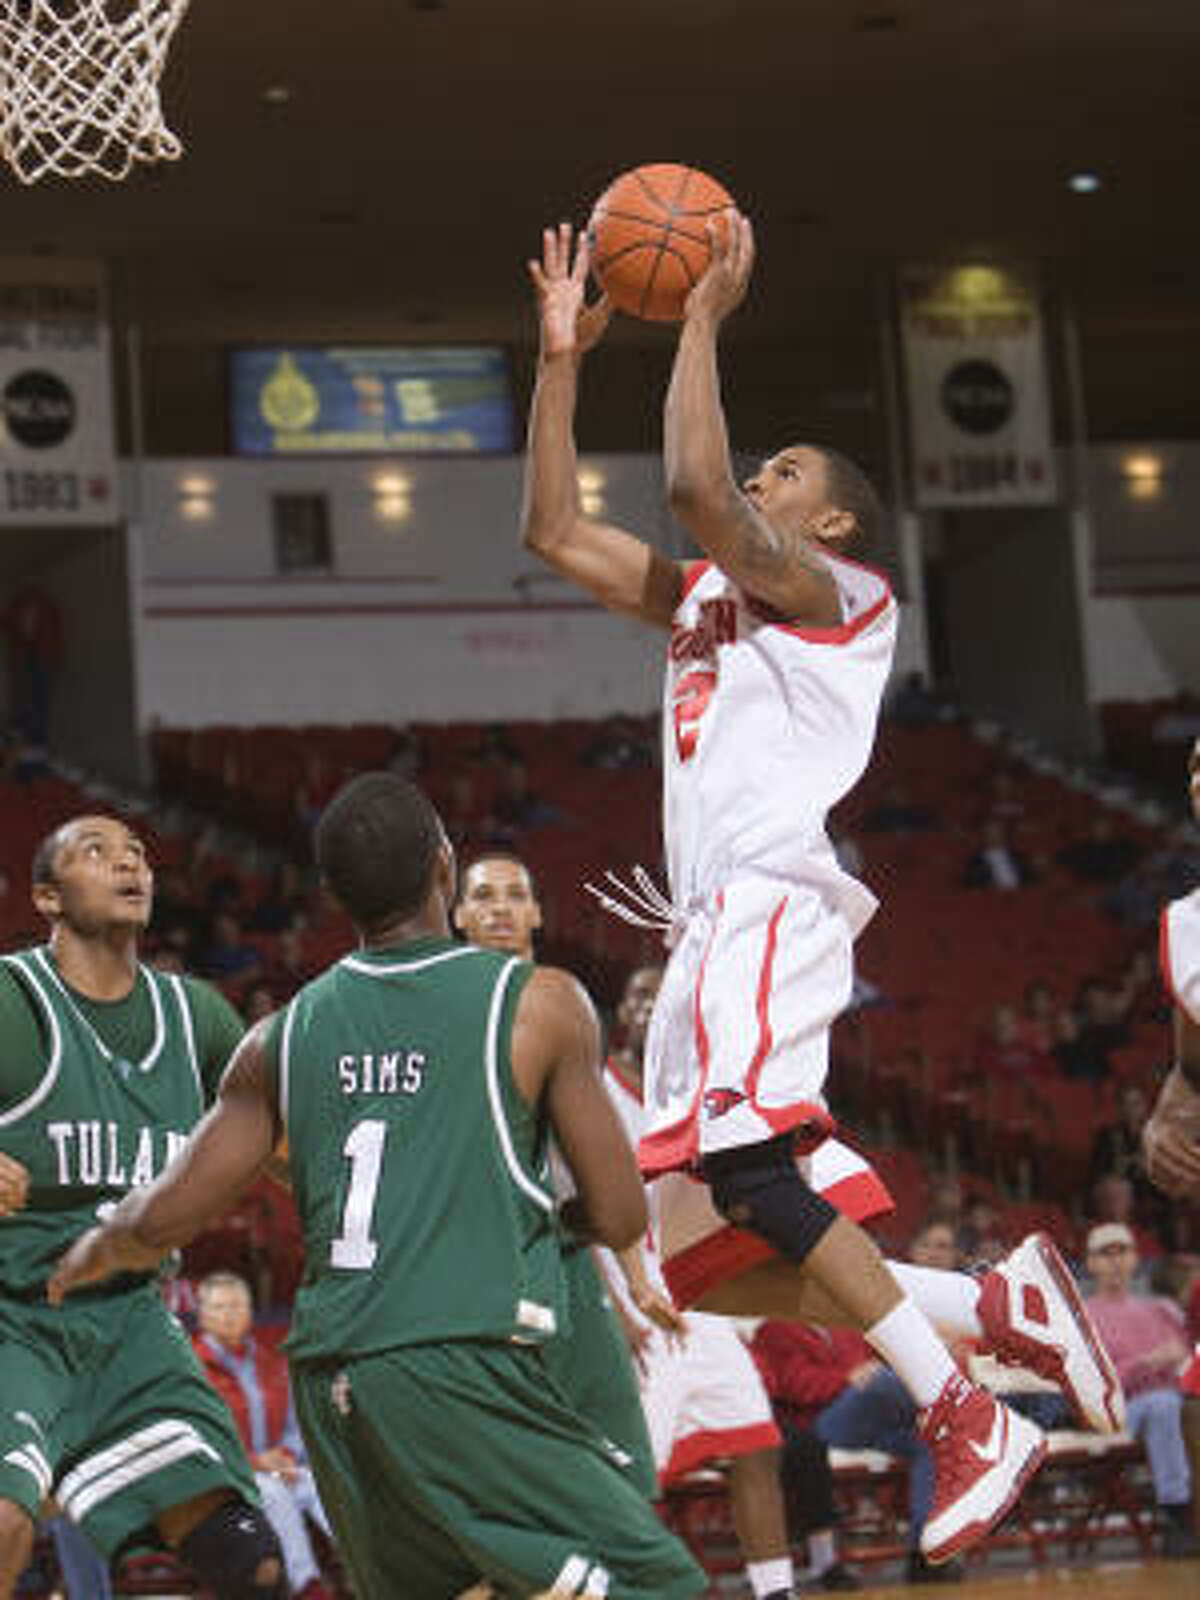 Houston's Zamal Nixon drives to the basket late in the second half over Tulane's Kevin Sims.